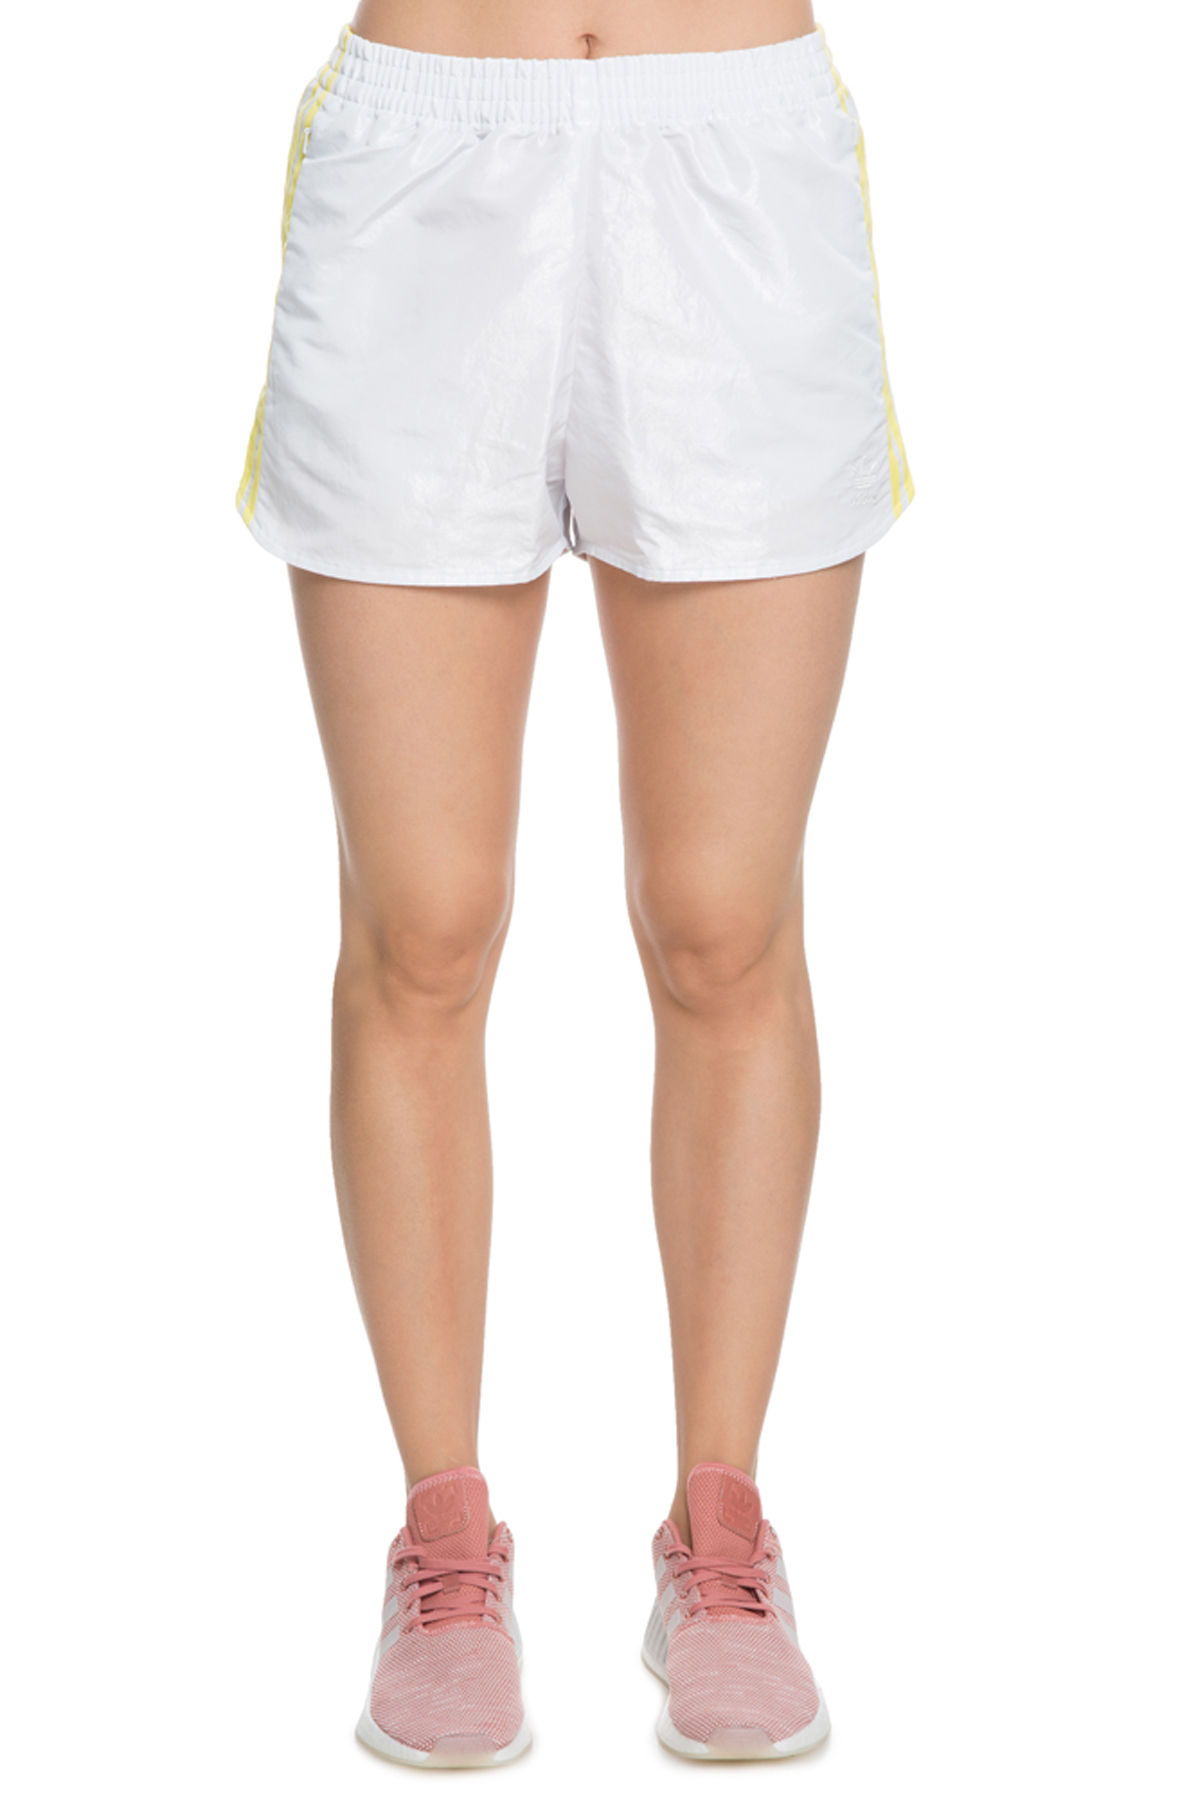 Image of The Fsh L Short in Vintage White